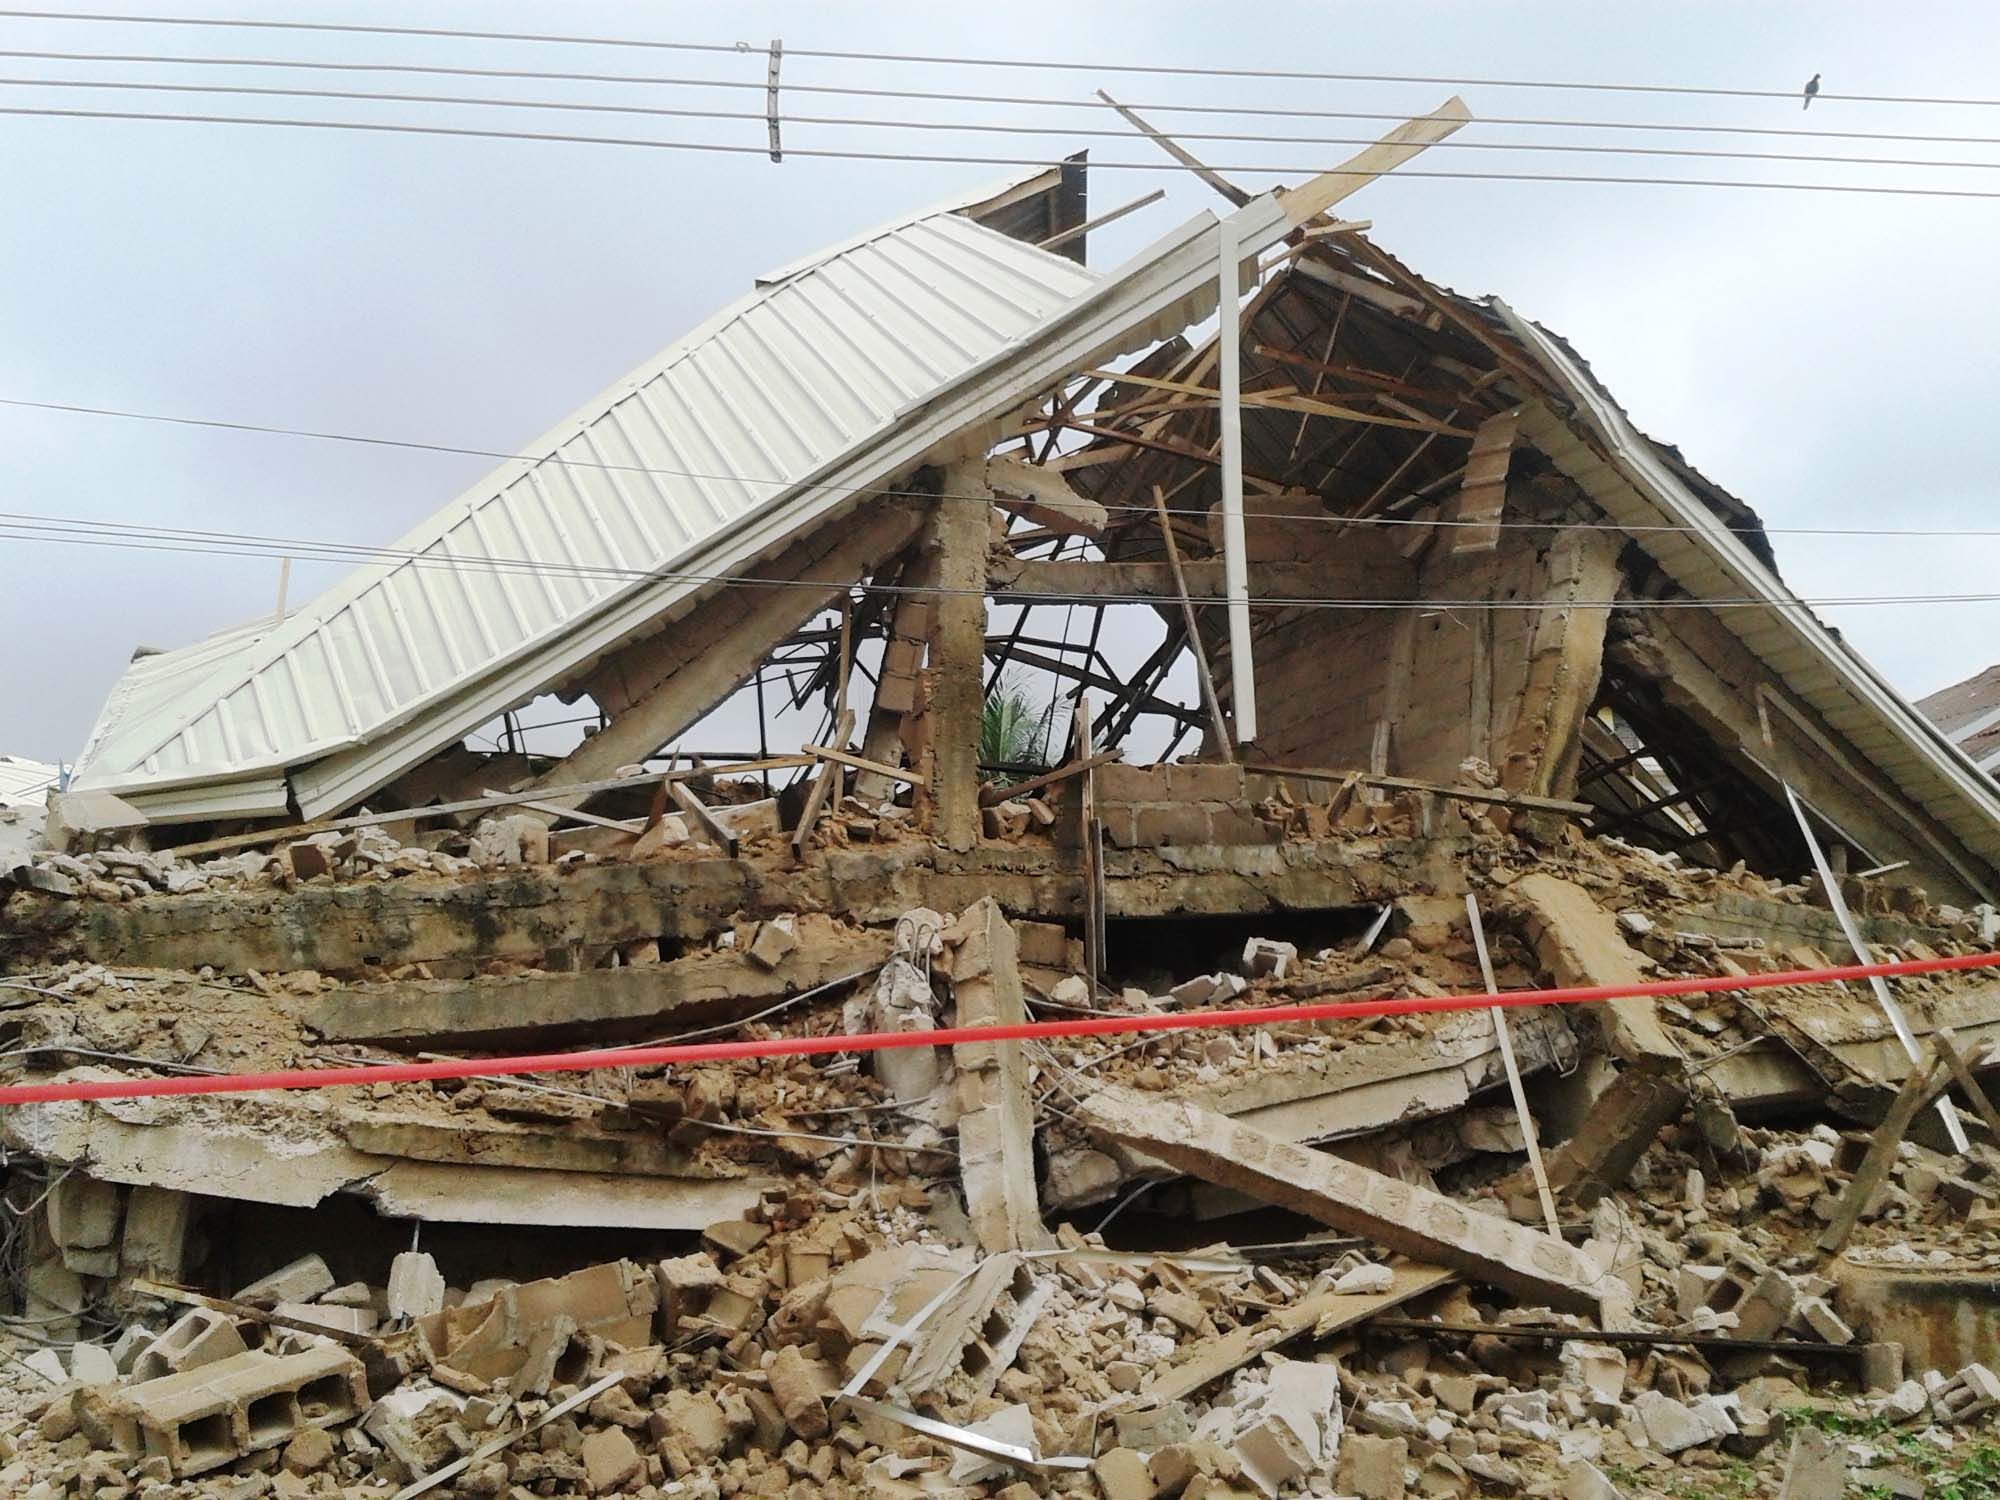 Three storey building collapses in Lagos – The Eagle Online